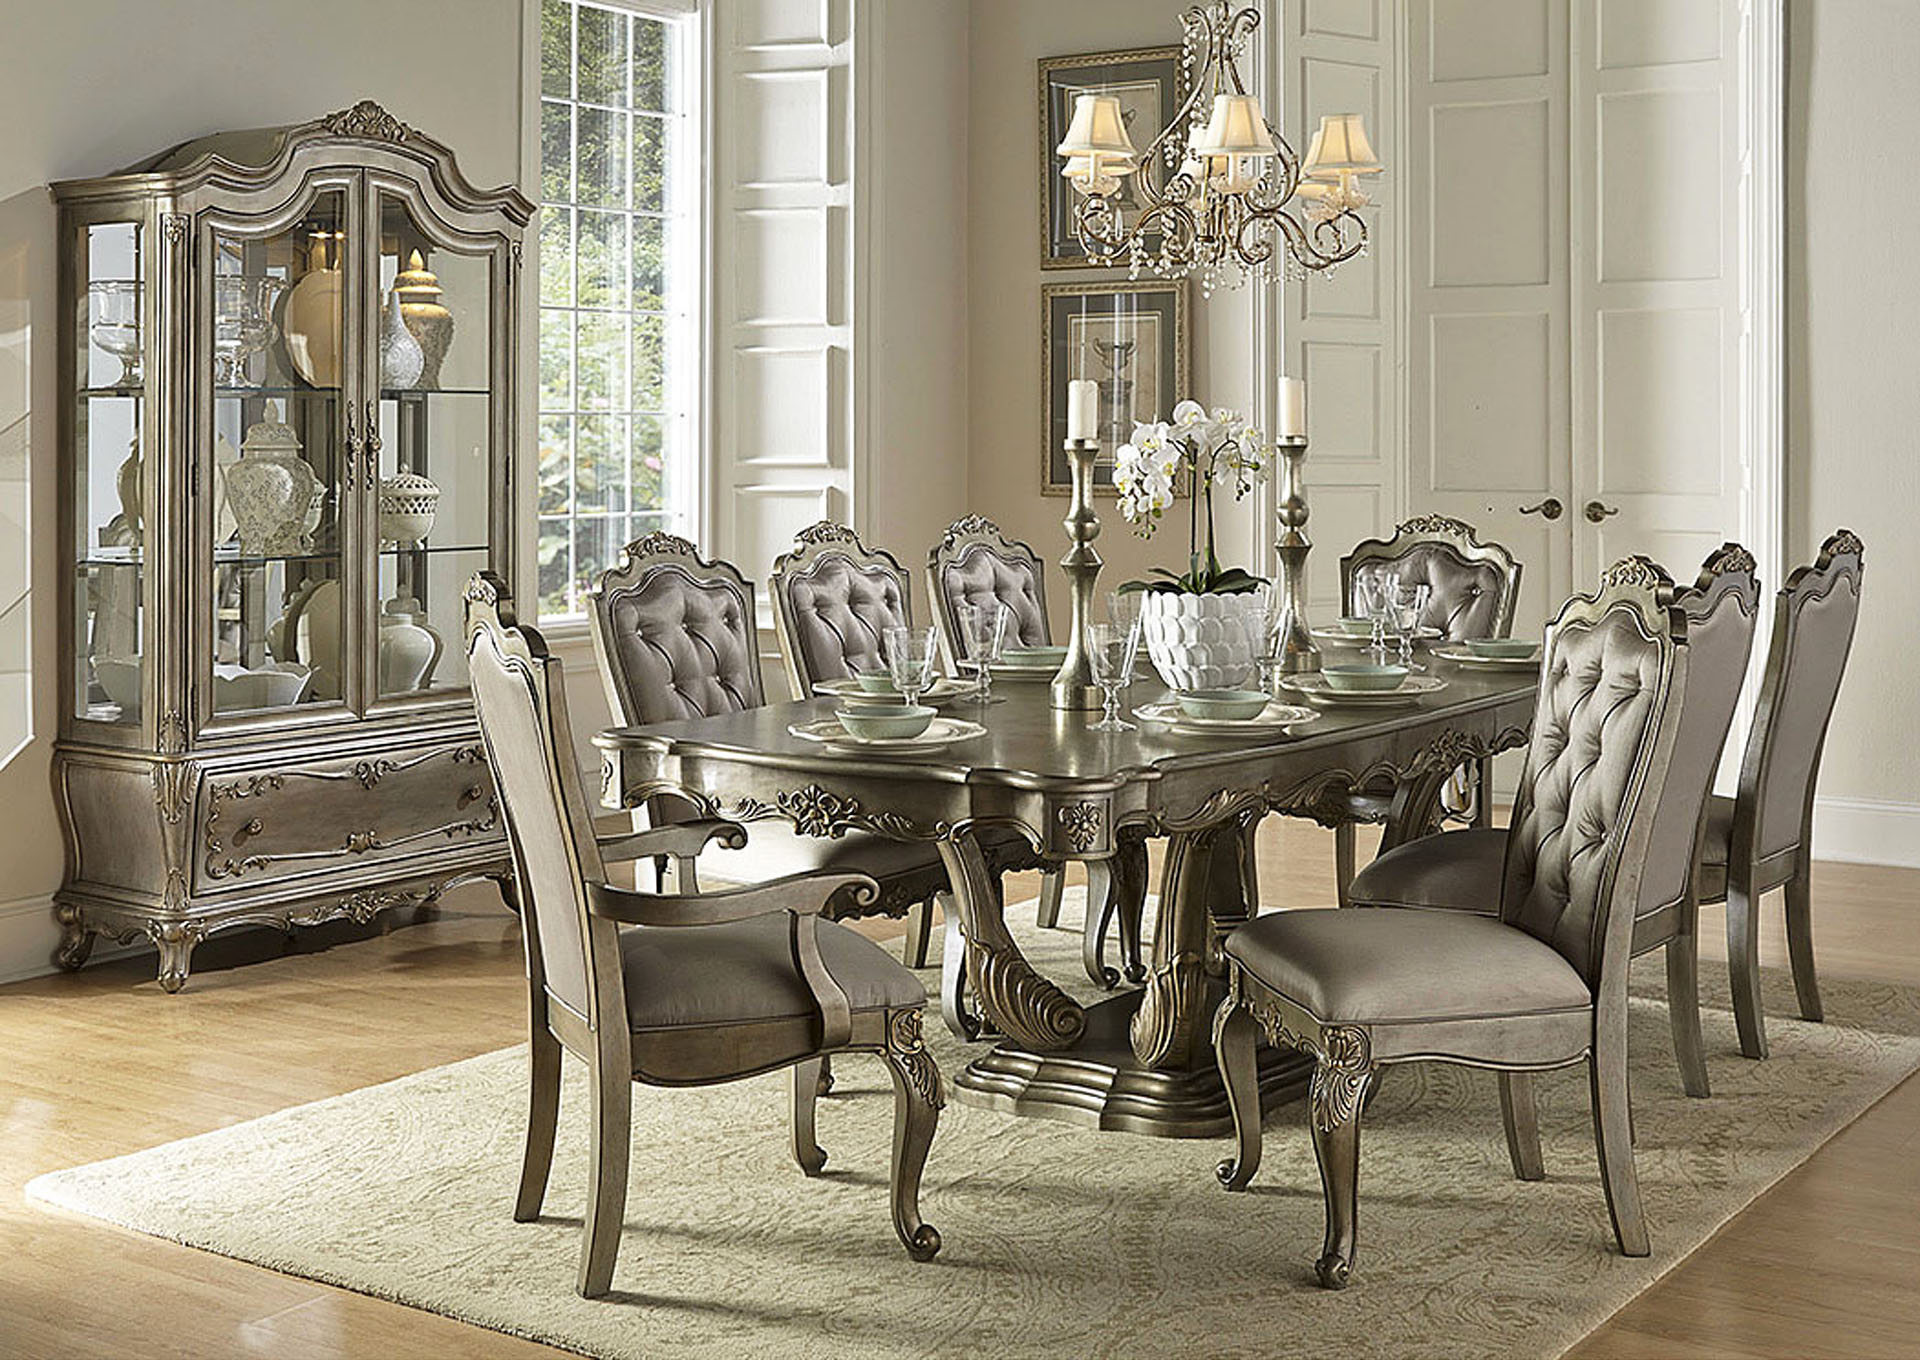 Florentina Gold Rectangular Dining Room Table,Homelegance